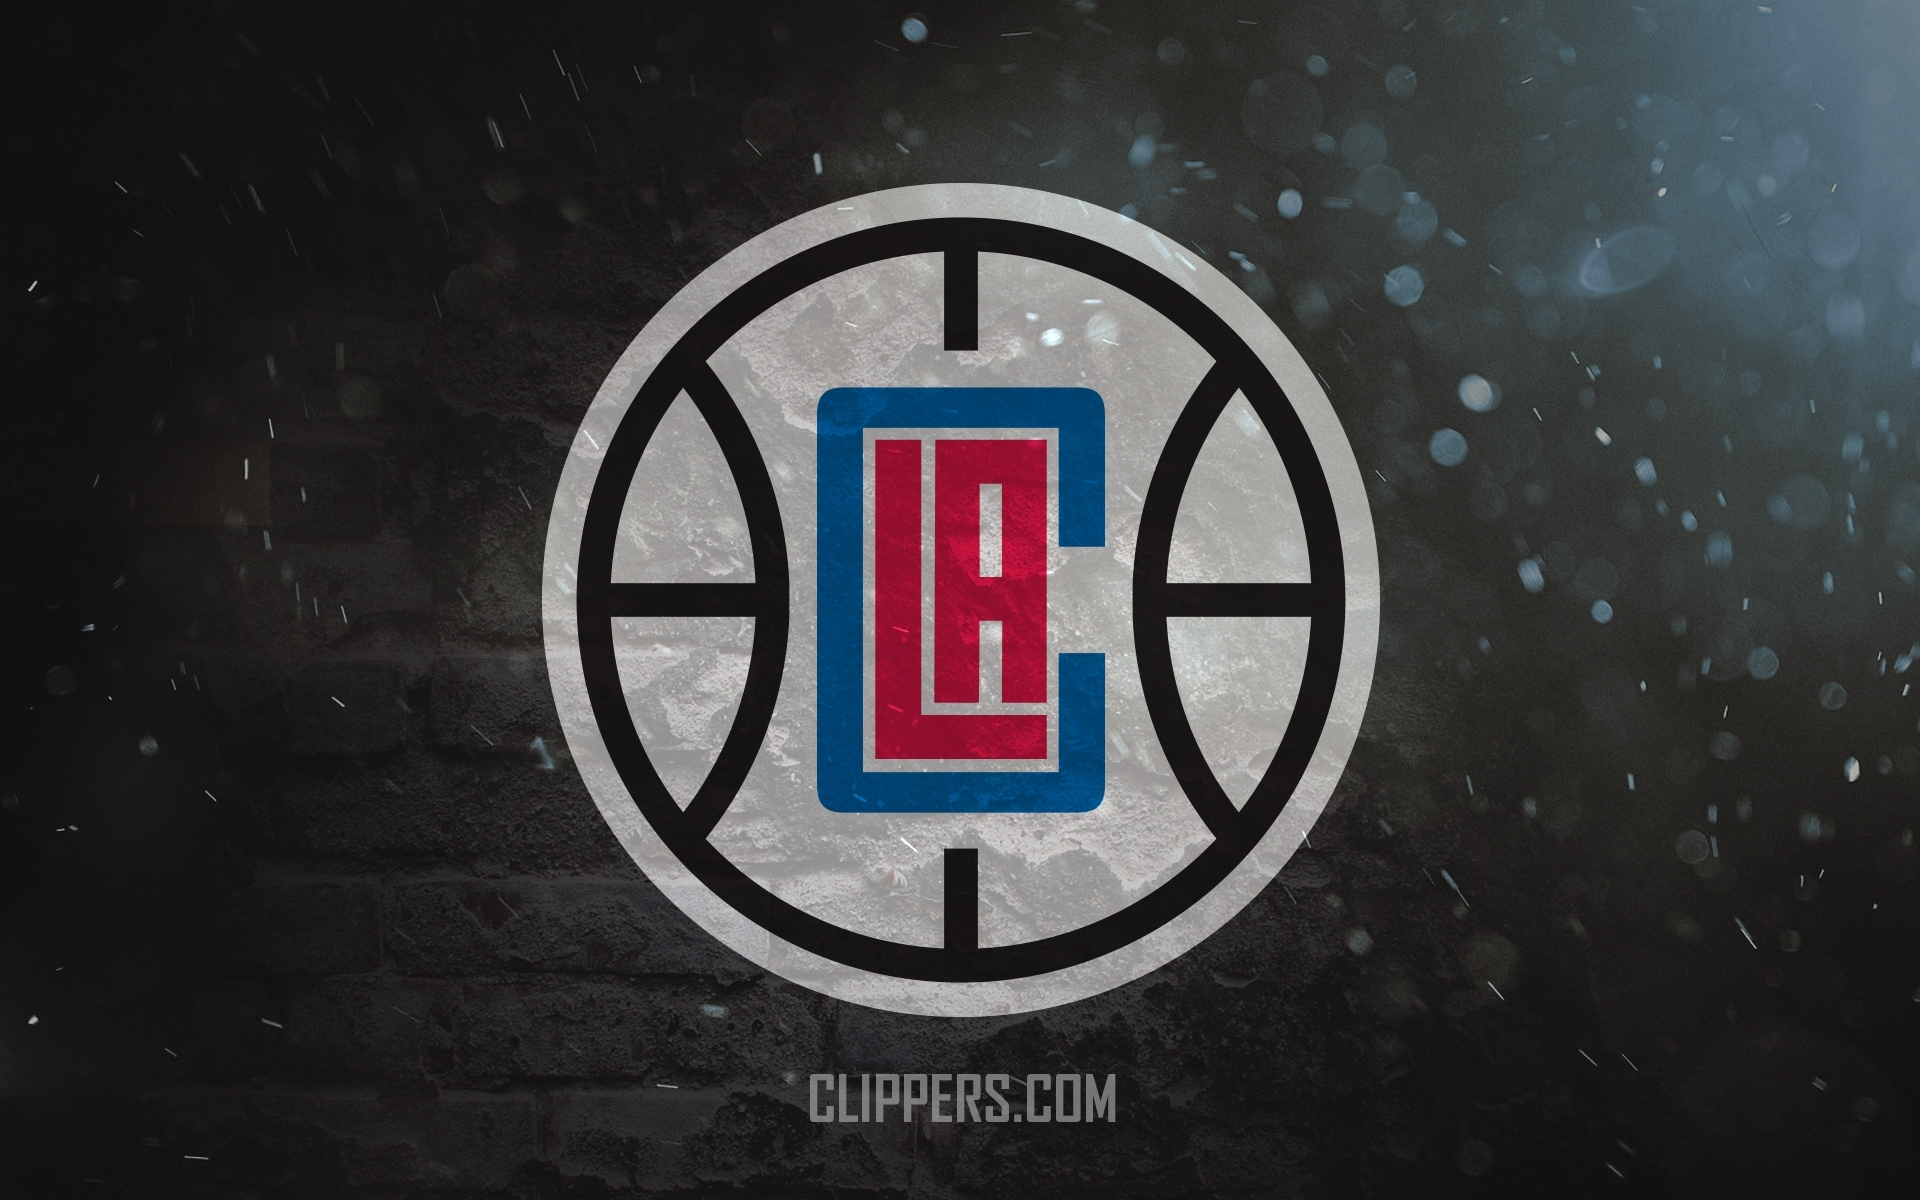 claim your court | la clippers | pictures that describe anthony